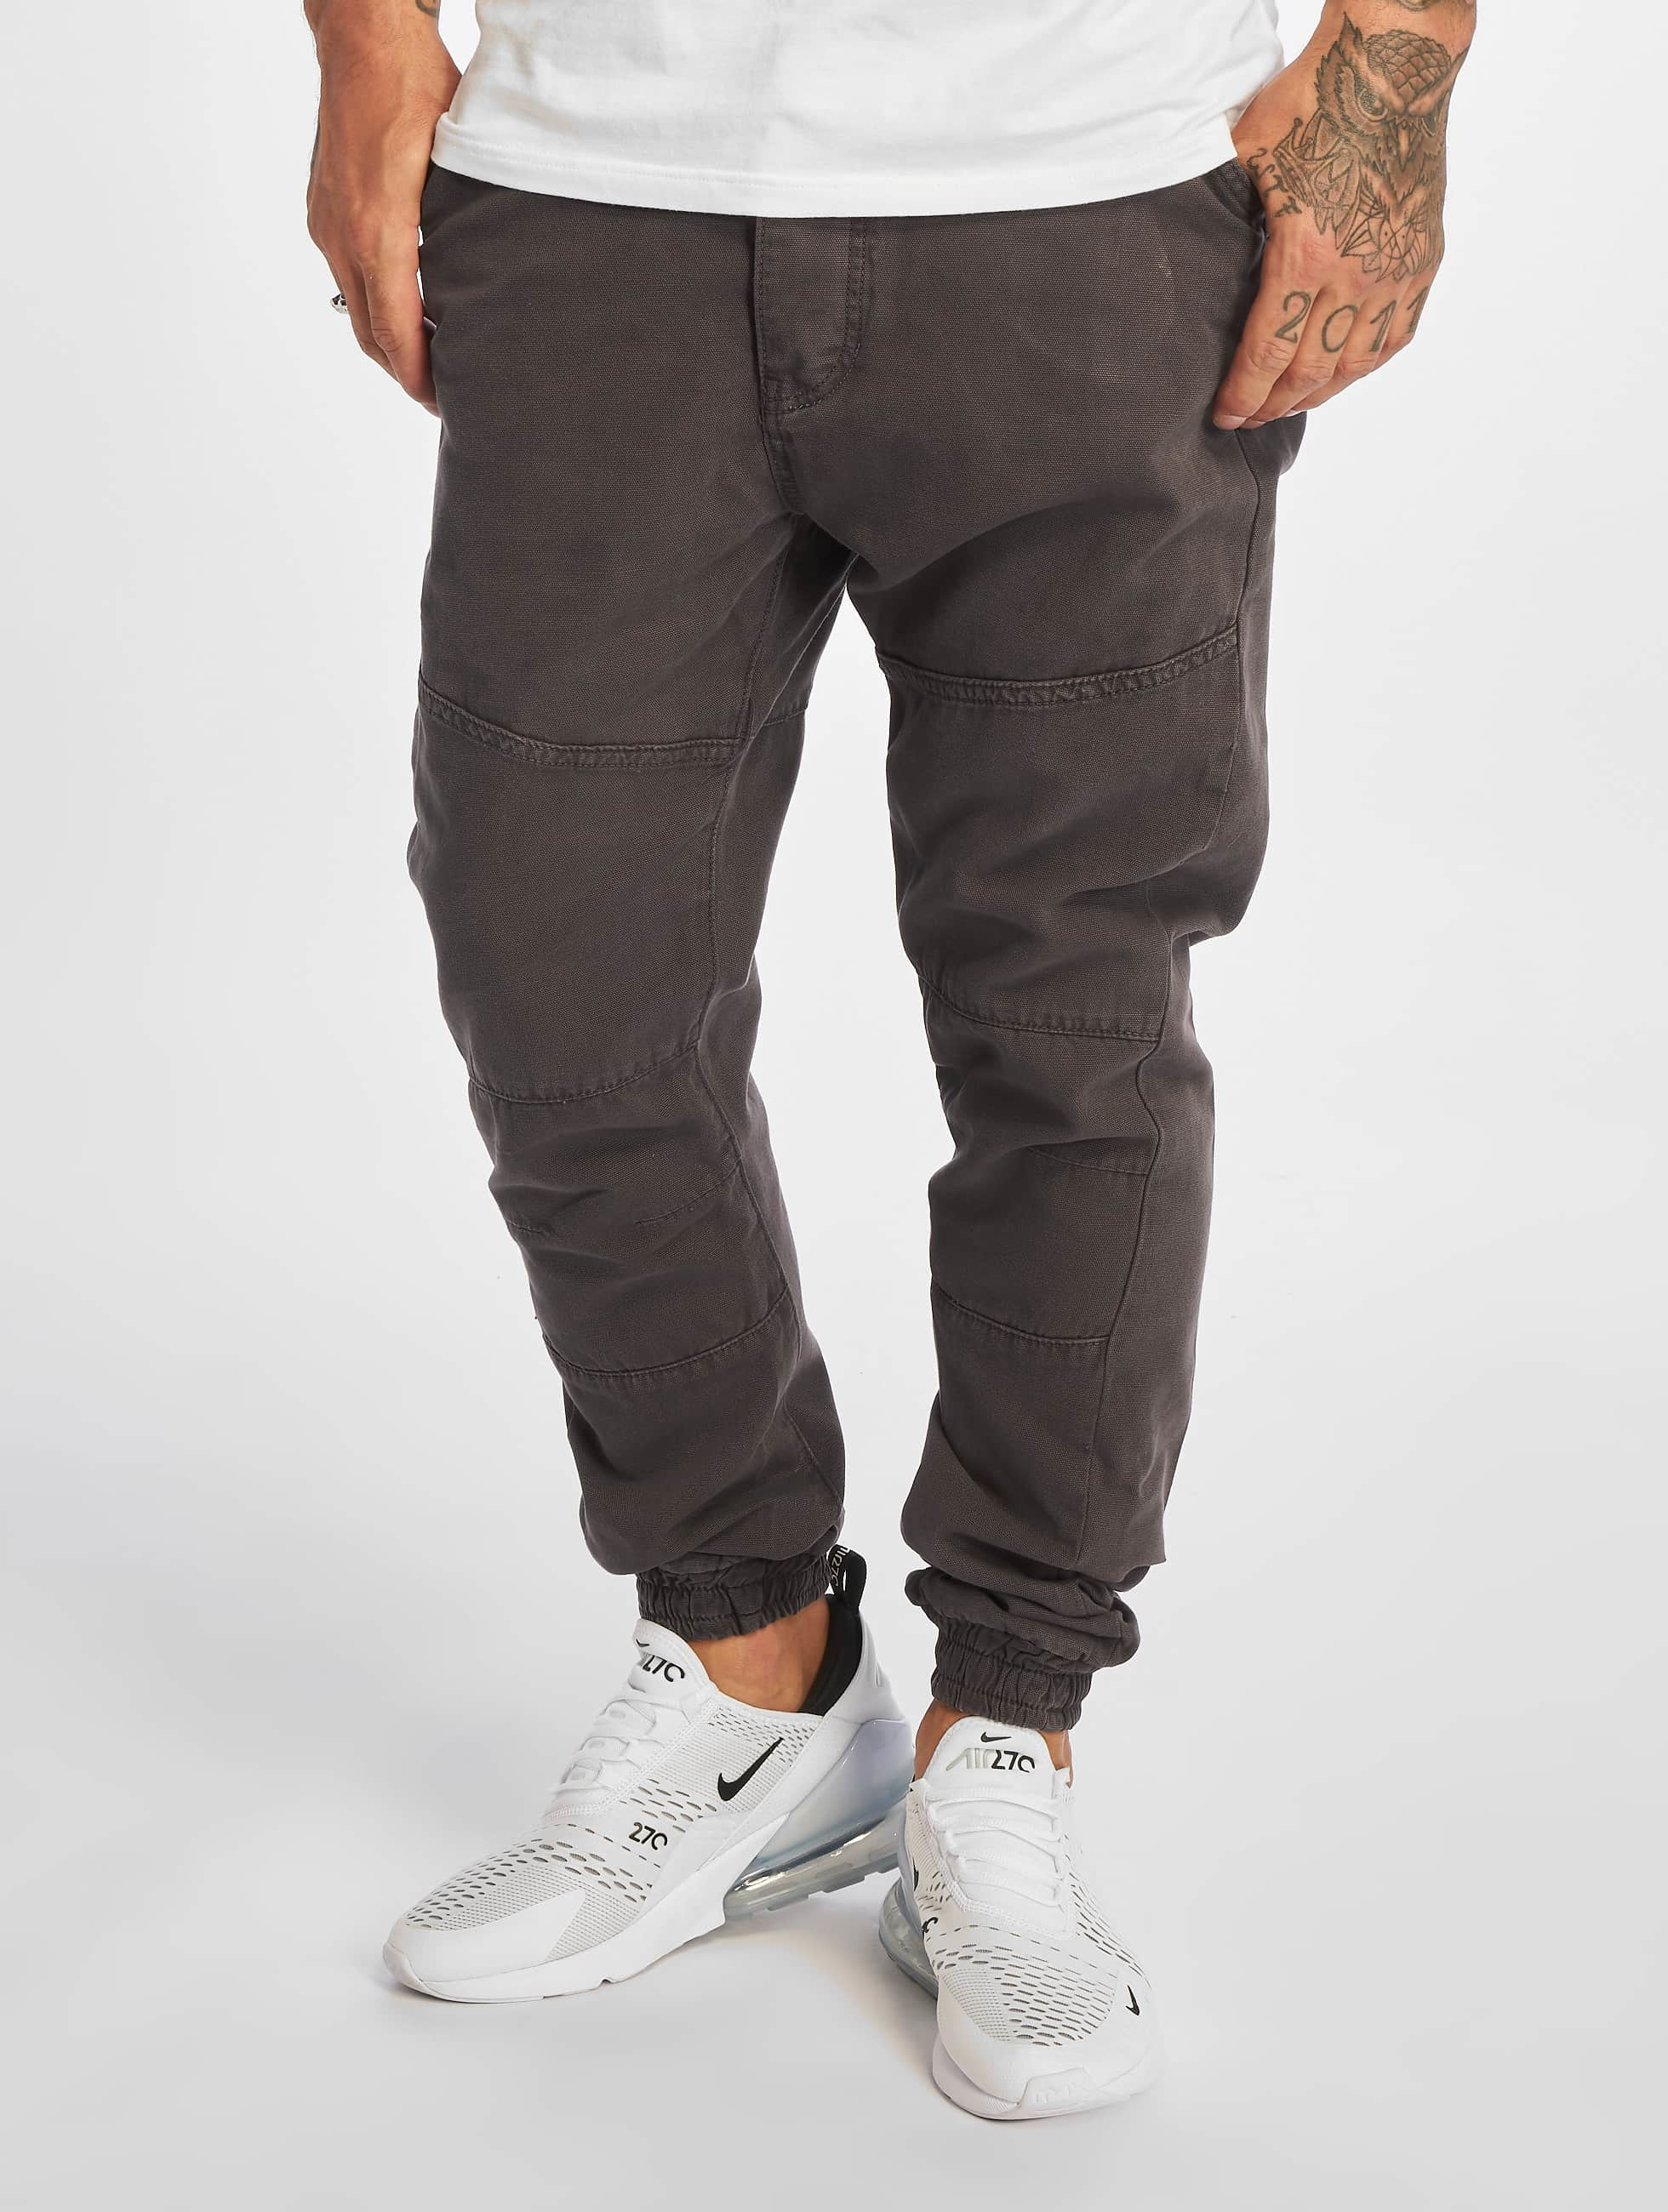 Just Rhyse / Chino Börge in grey W 38